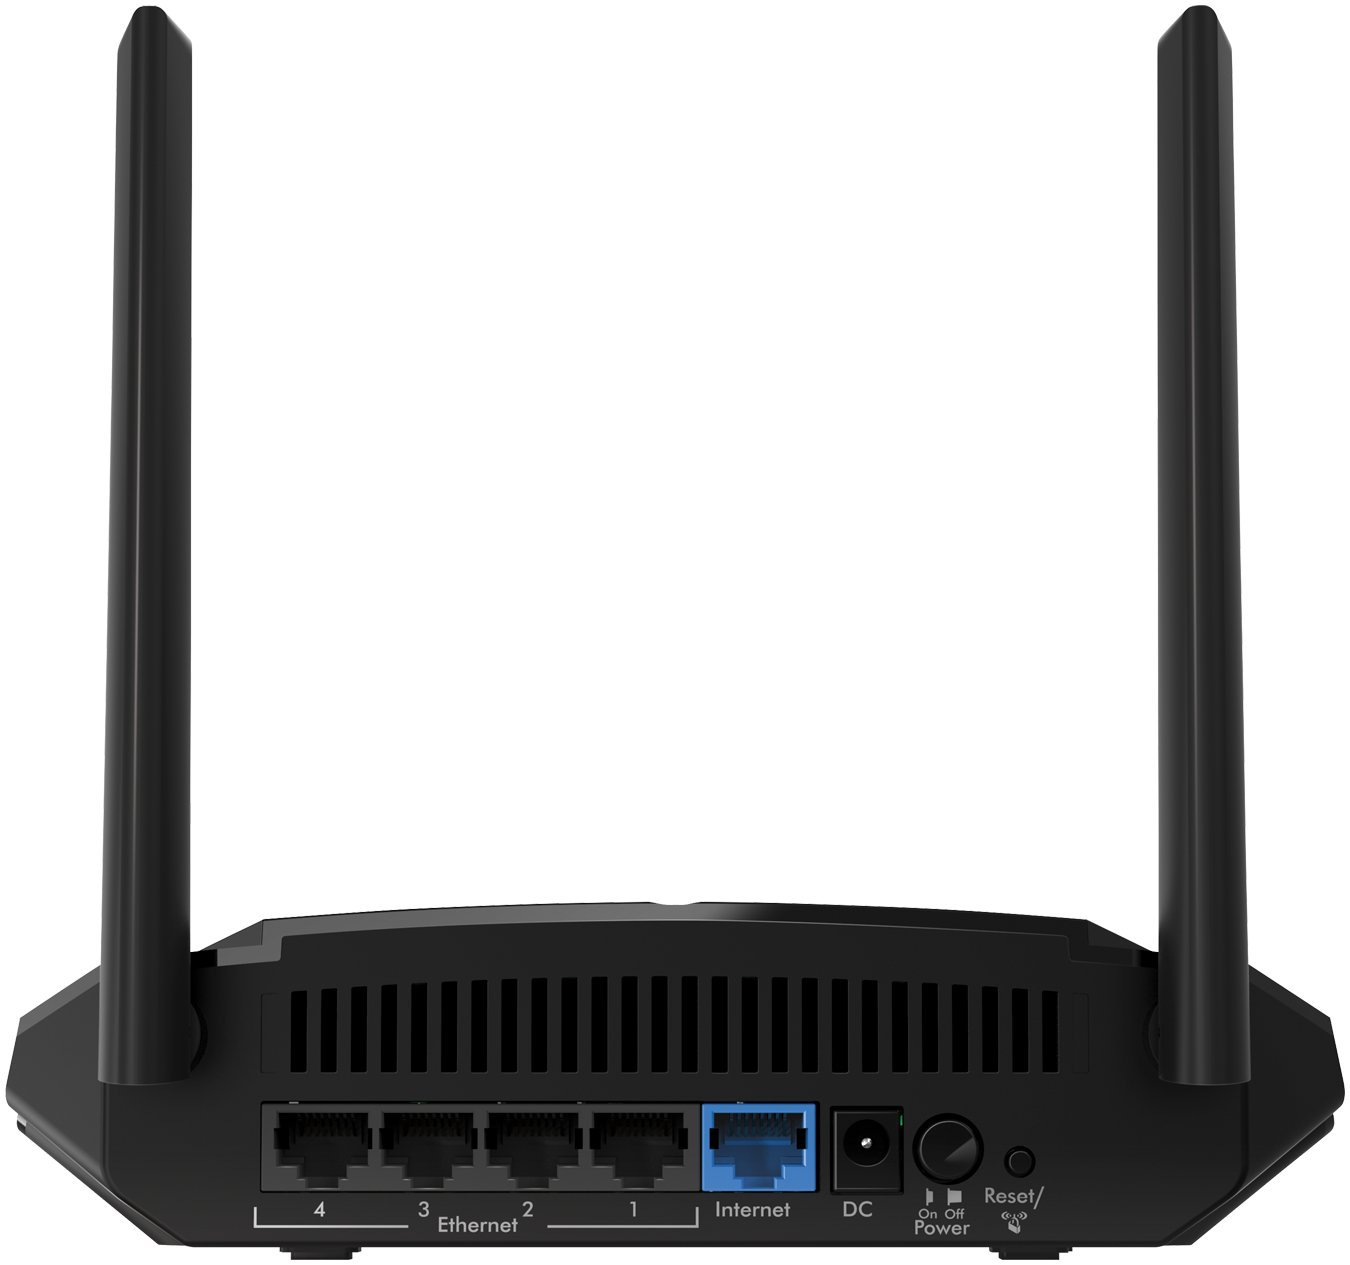 NETGEAR AC1000 Dual Band Smart WiFi Router 4 Faster WiFi - Now up to 1000 Mbps (300 + 700) Upgrade your WiFi to support new AC devices. Memory:8 MB flash and 64 MB RAM Cat-6 Ethernet patch cable for wired home and office networks